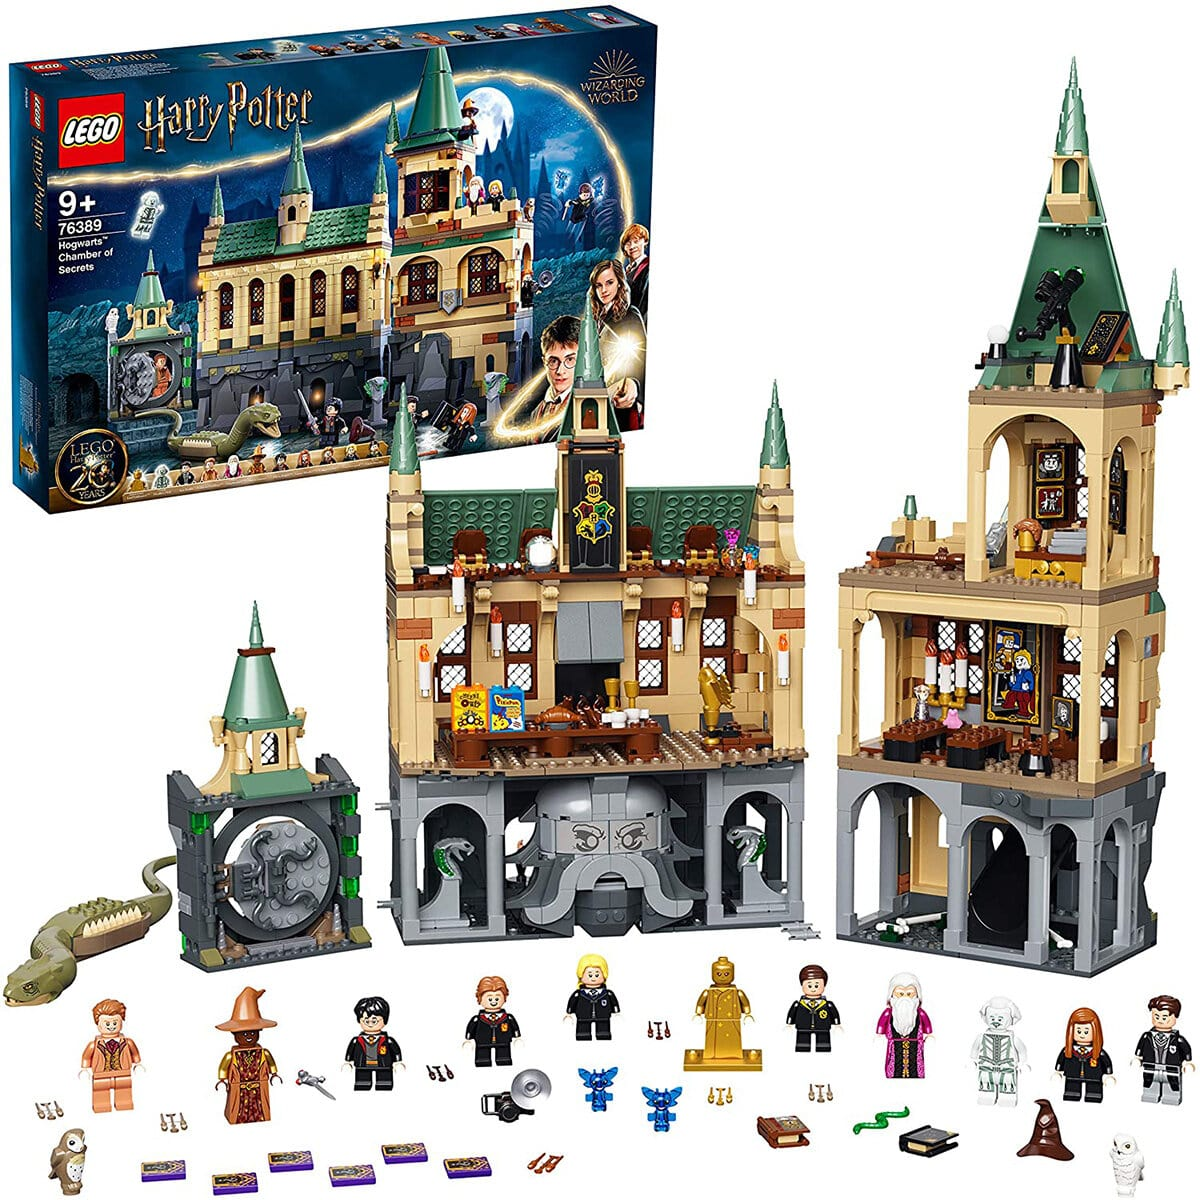 https://www.hellobricks.com/wp-content/uploads/2021/04/LEGO-Harry-Potter-76389-Hogwarts-Chamber-of-Secrets.jpg